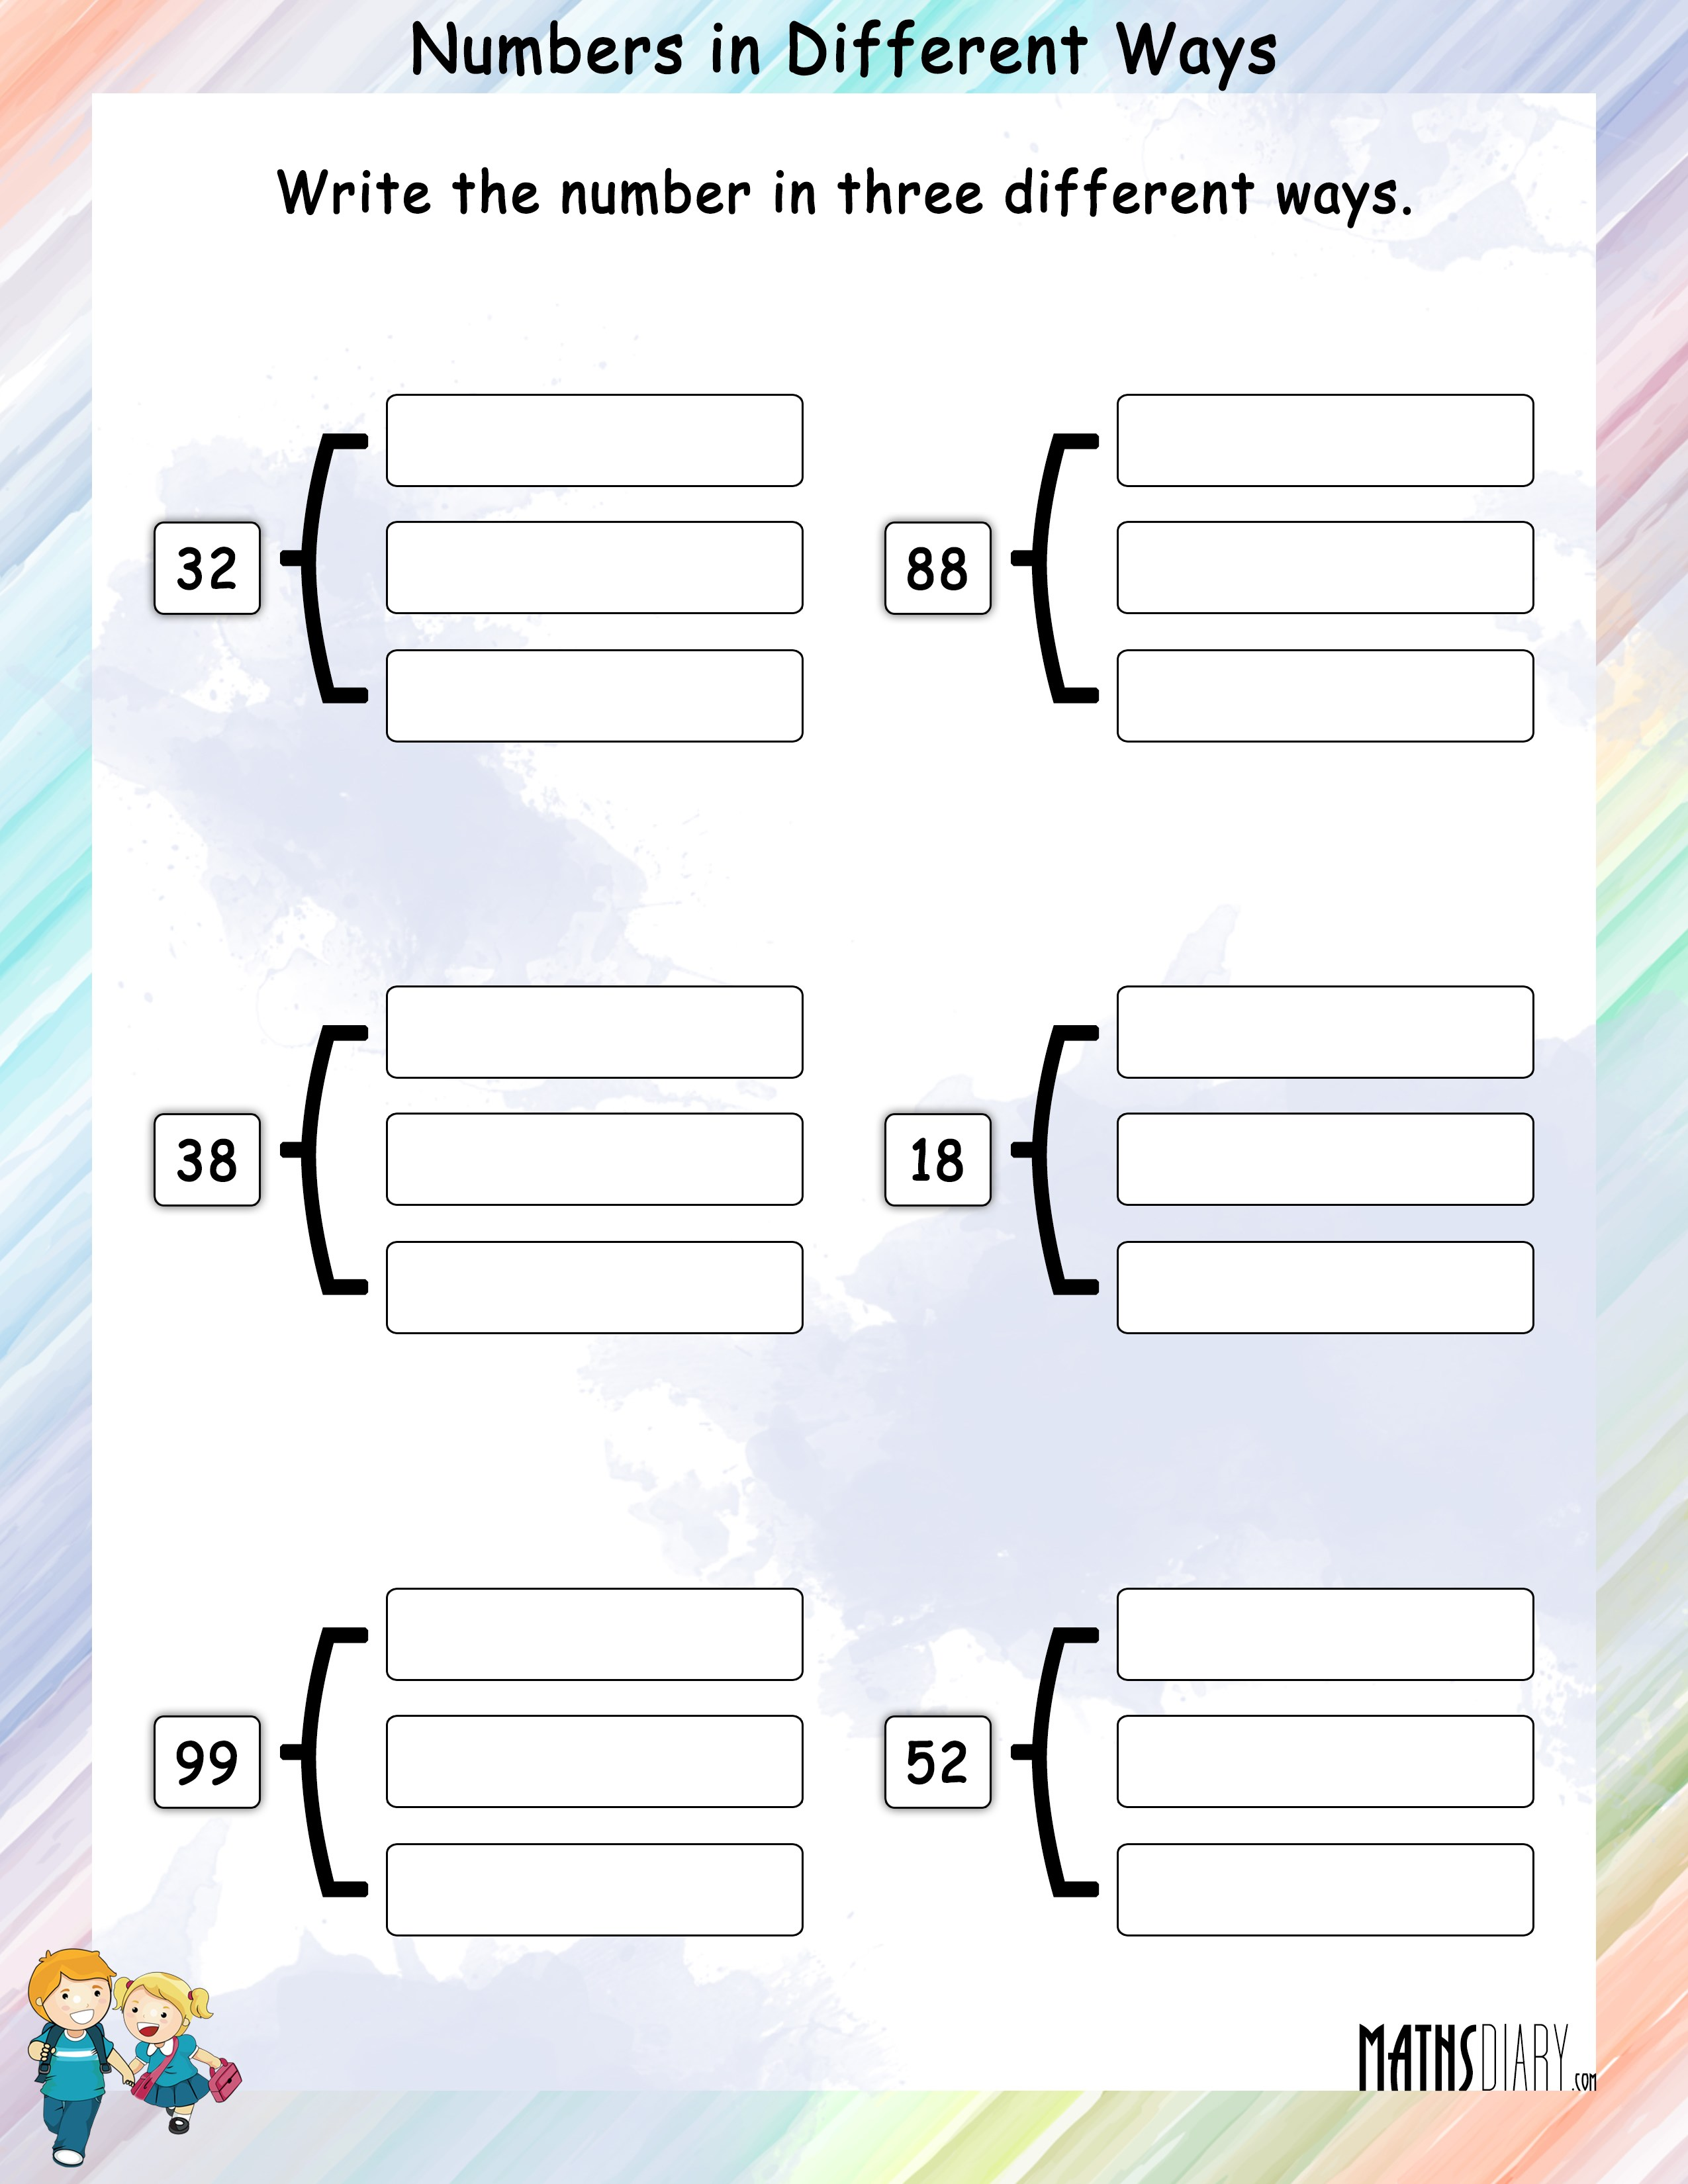 Write Numbers In Different Ways